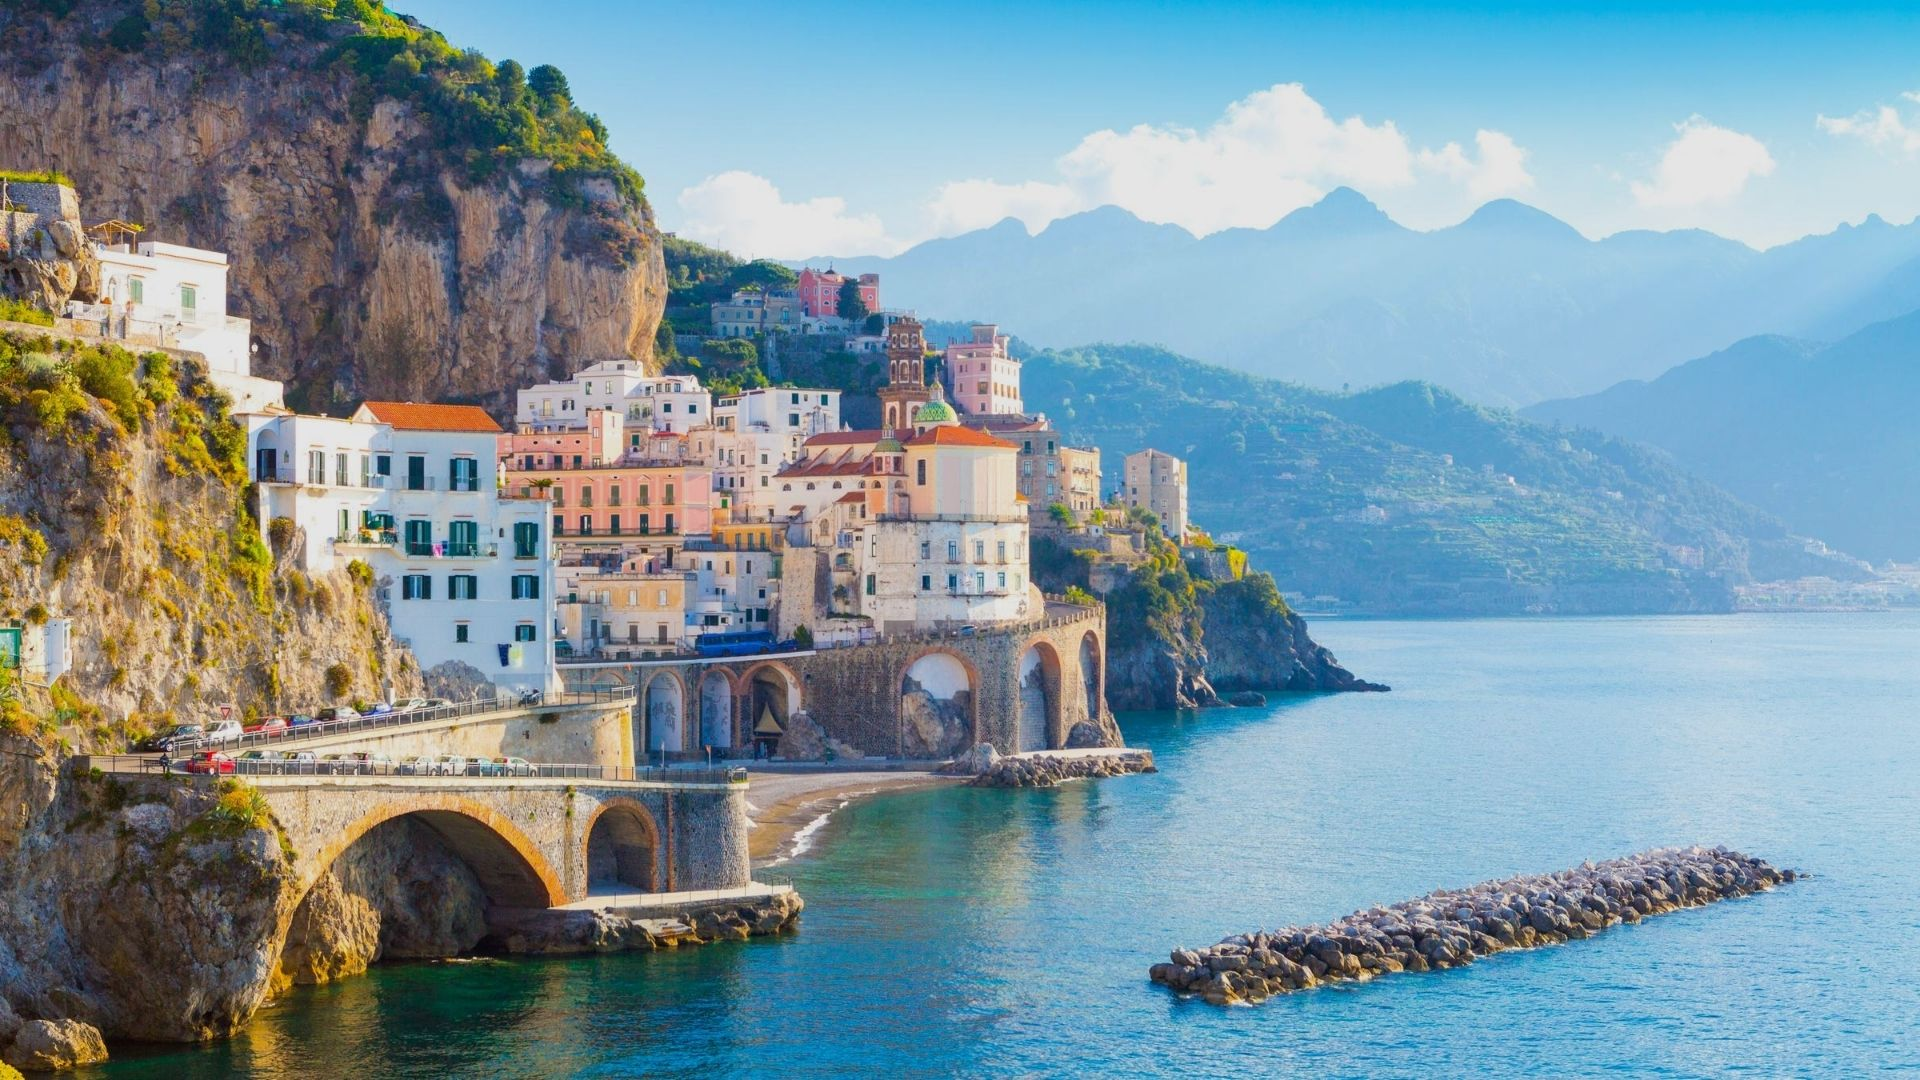 The treasures of the Sorrento peninsula: the excellence of food, wine and typical products